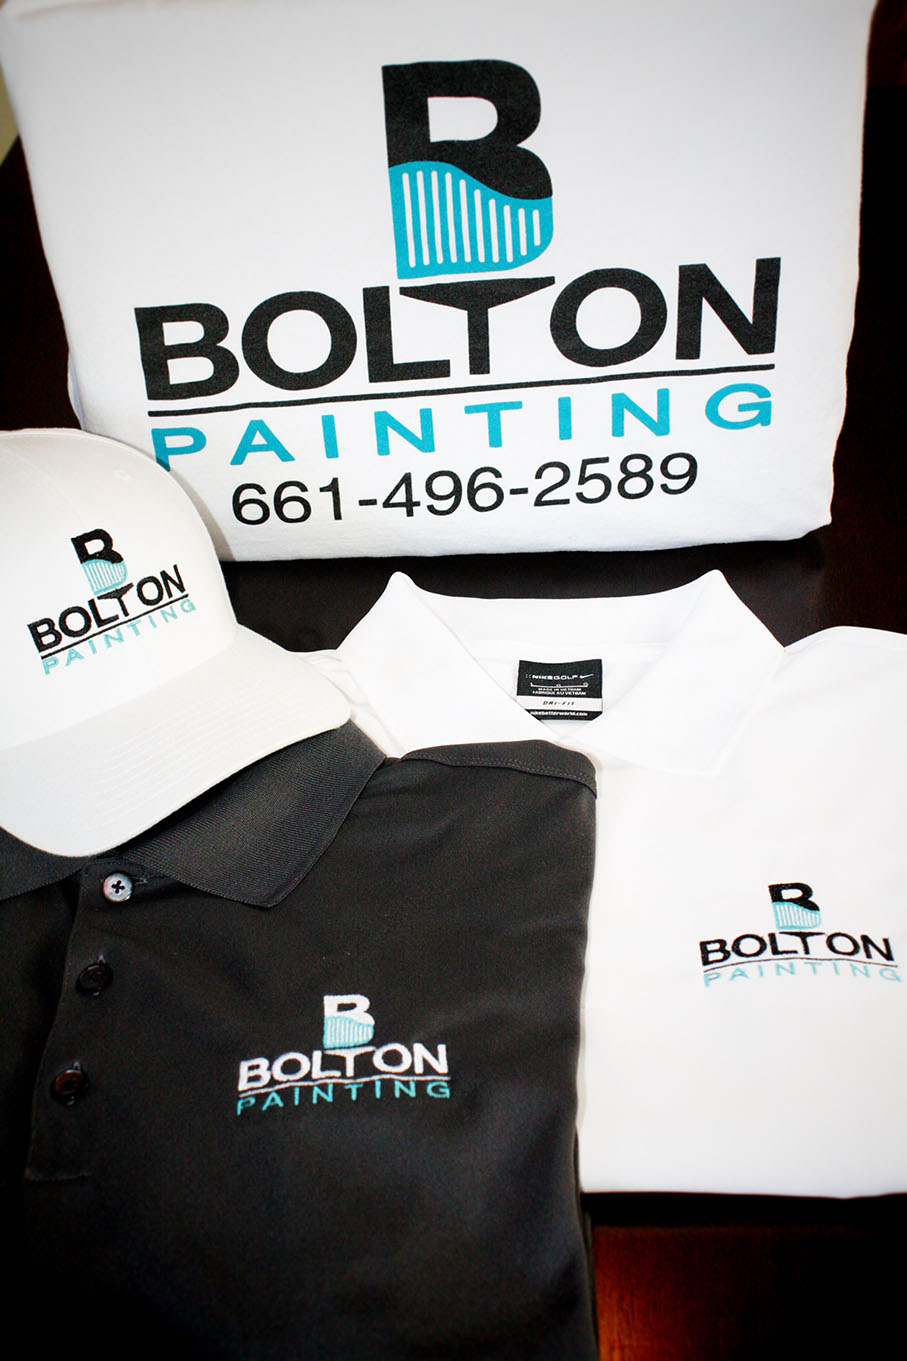 Bolton Painting Branding